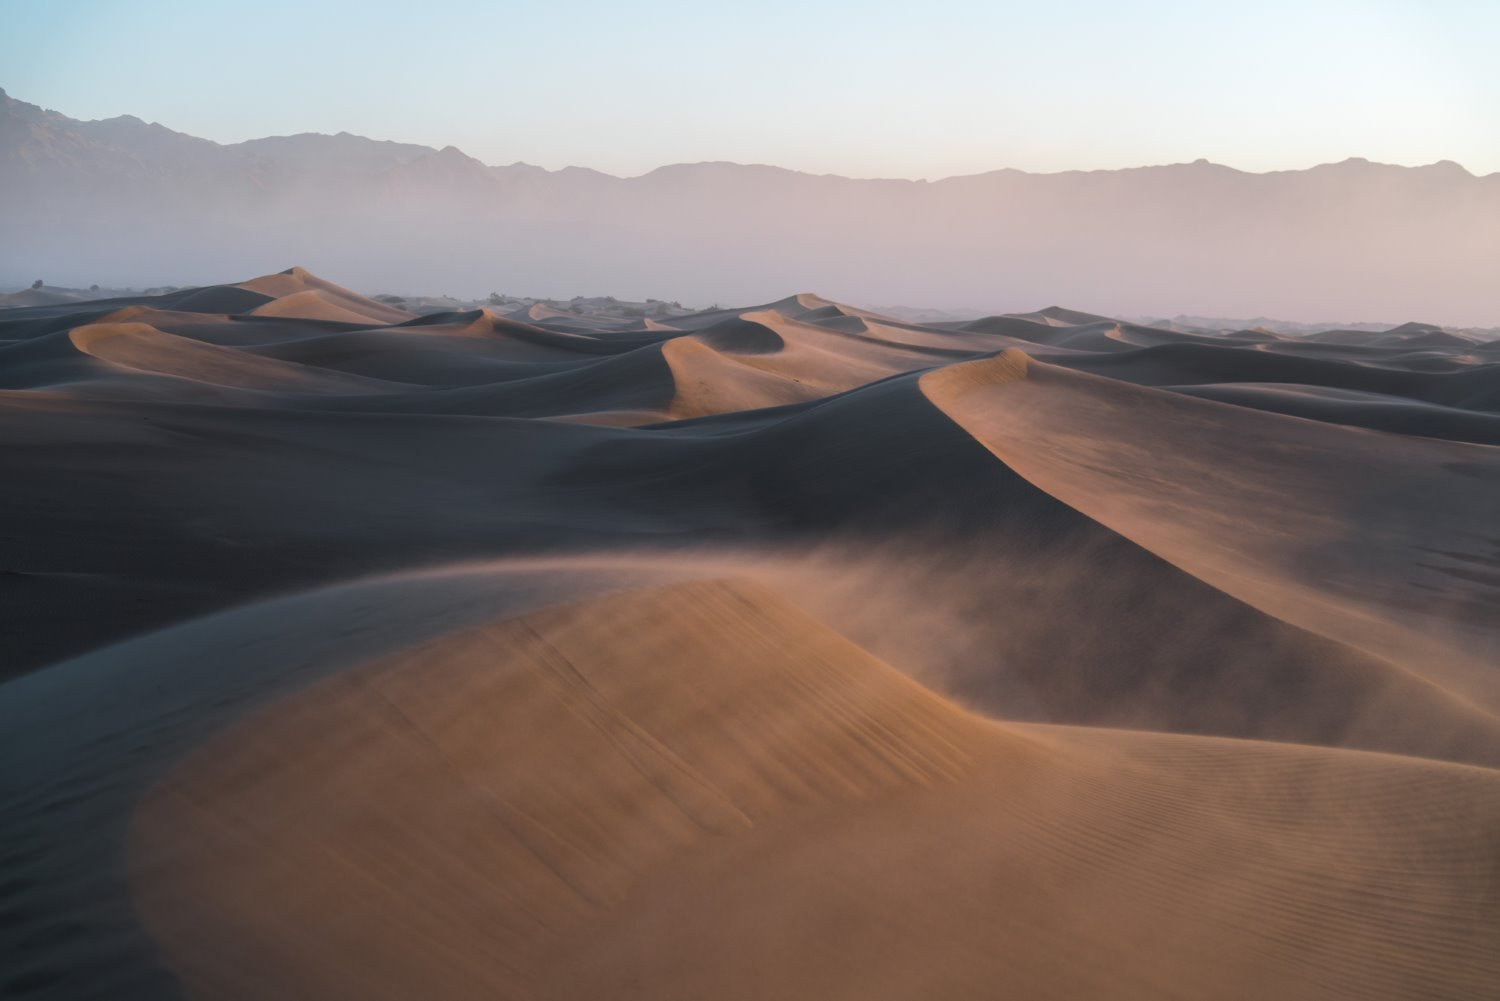 sand dunes with rule of thirds landscape composition